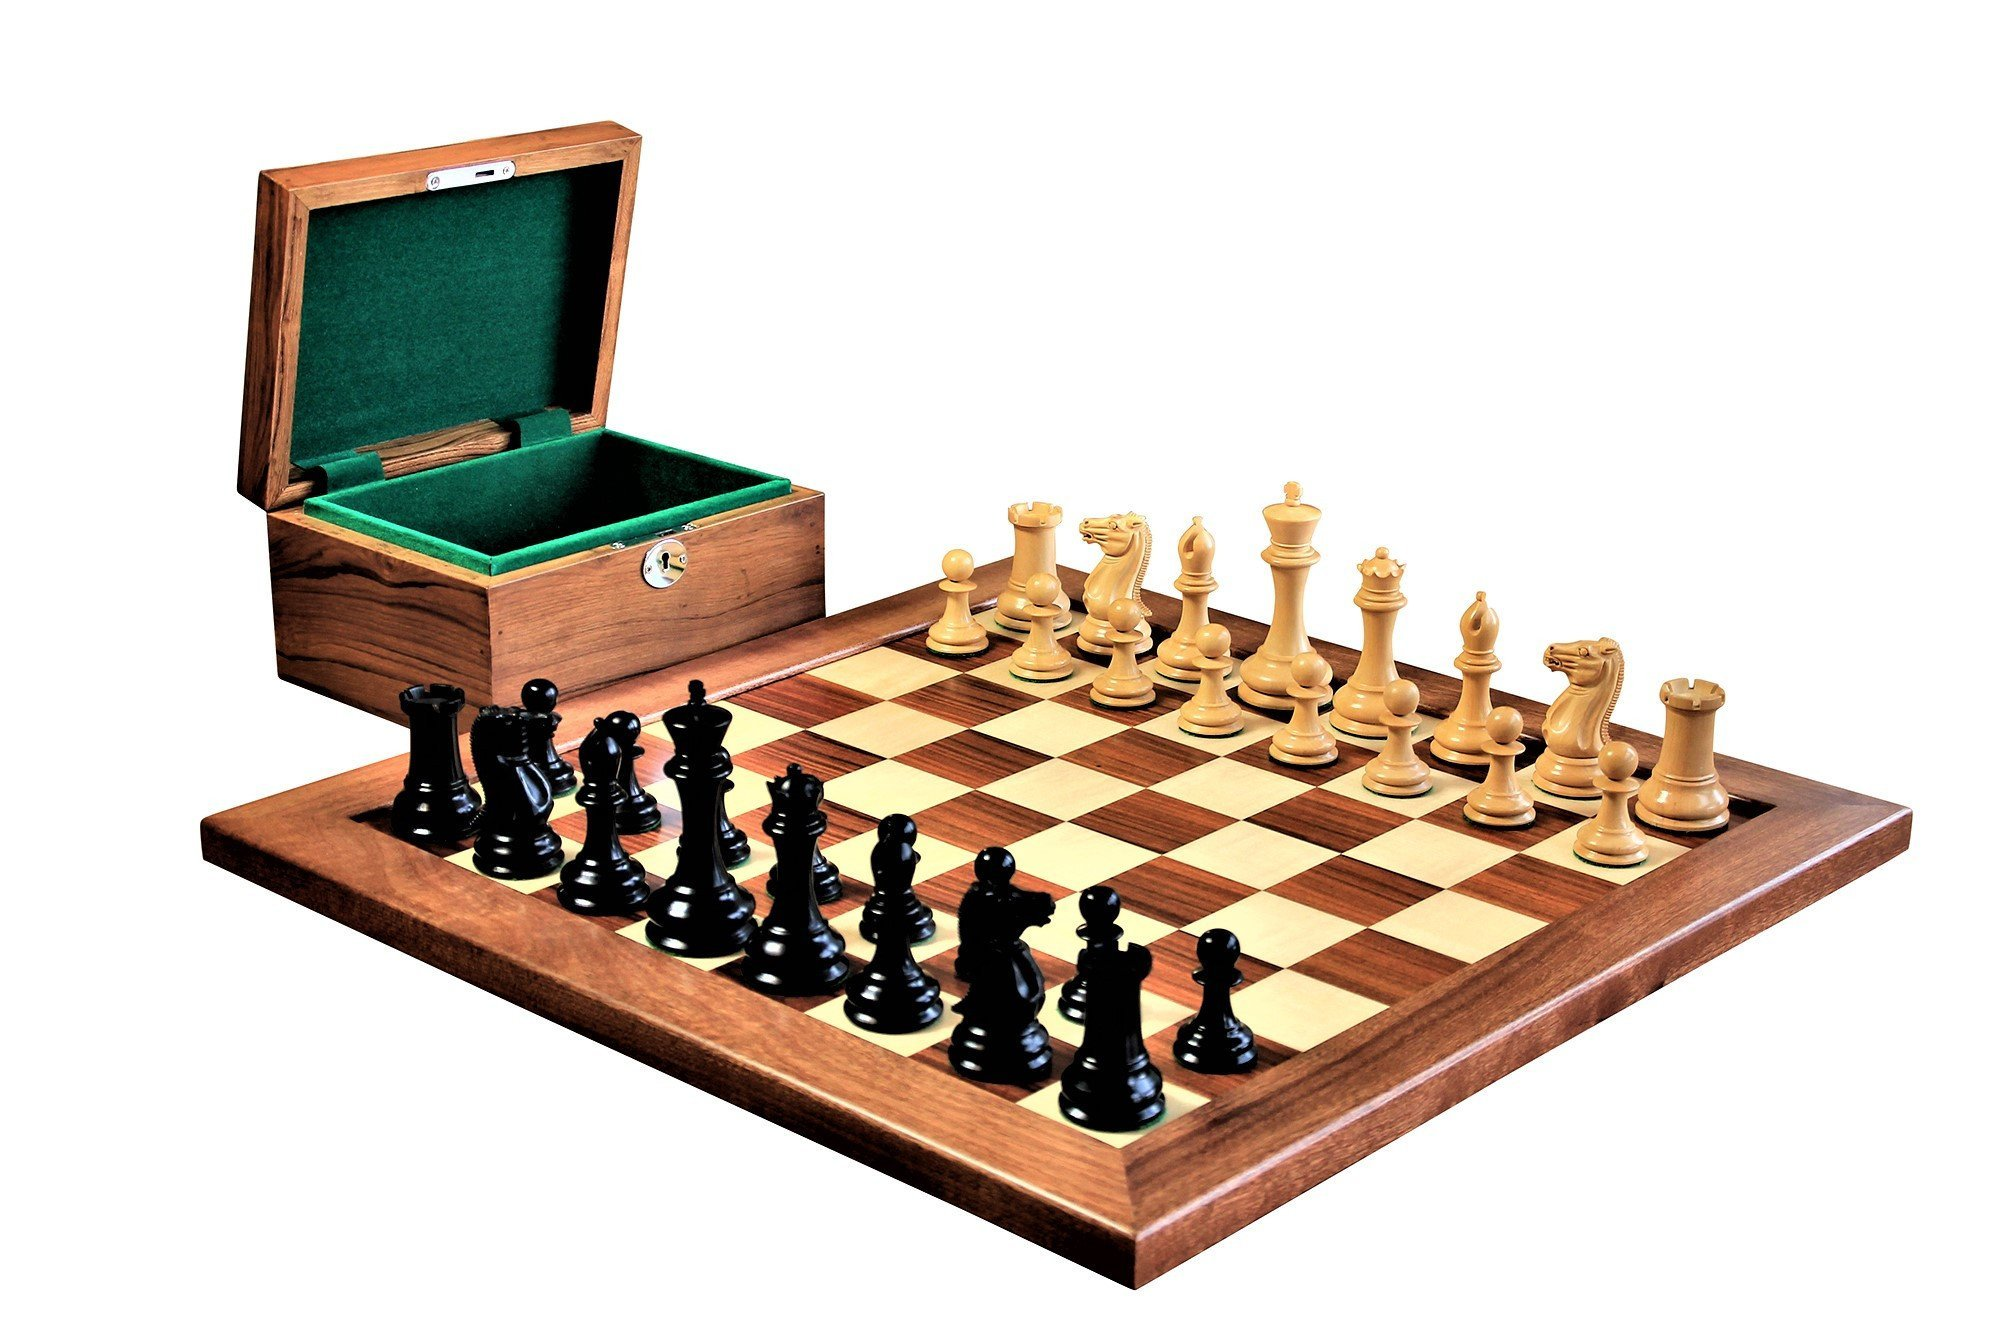 Shop for Luxury Chess Sets at ChessMaze